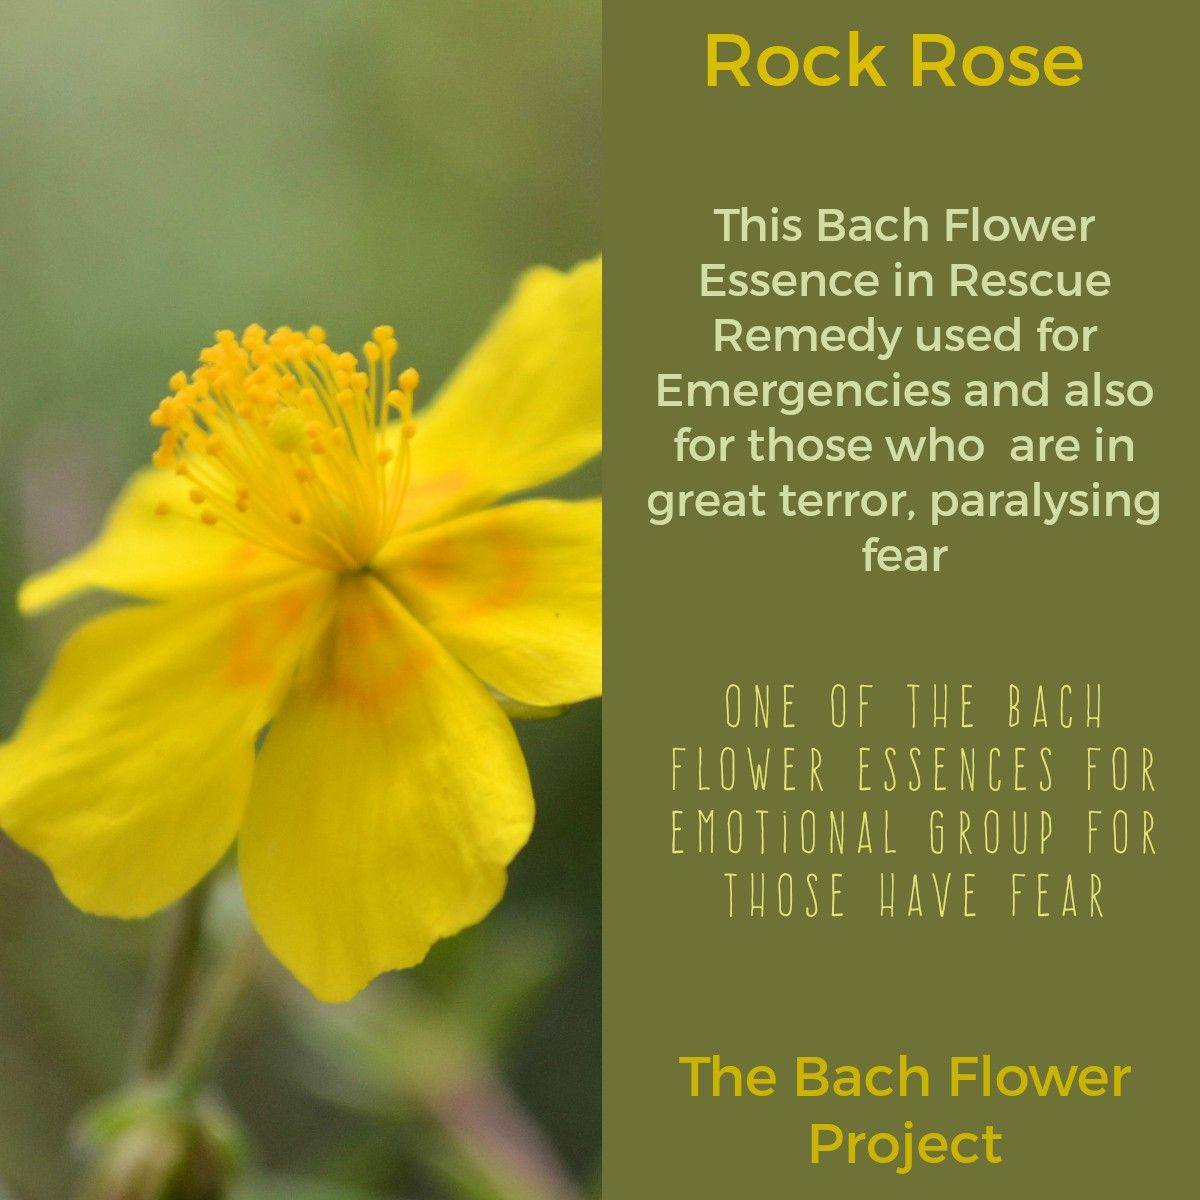 Bach Flower Essence Remedies Rock Rose One Of The 38 Dr Bach Flower Essence Remedies This Pos Flower Essences Remedies Bach Flower Remedies Flower Essences